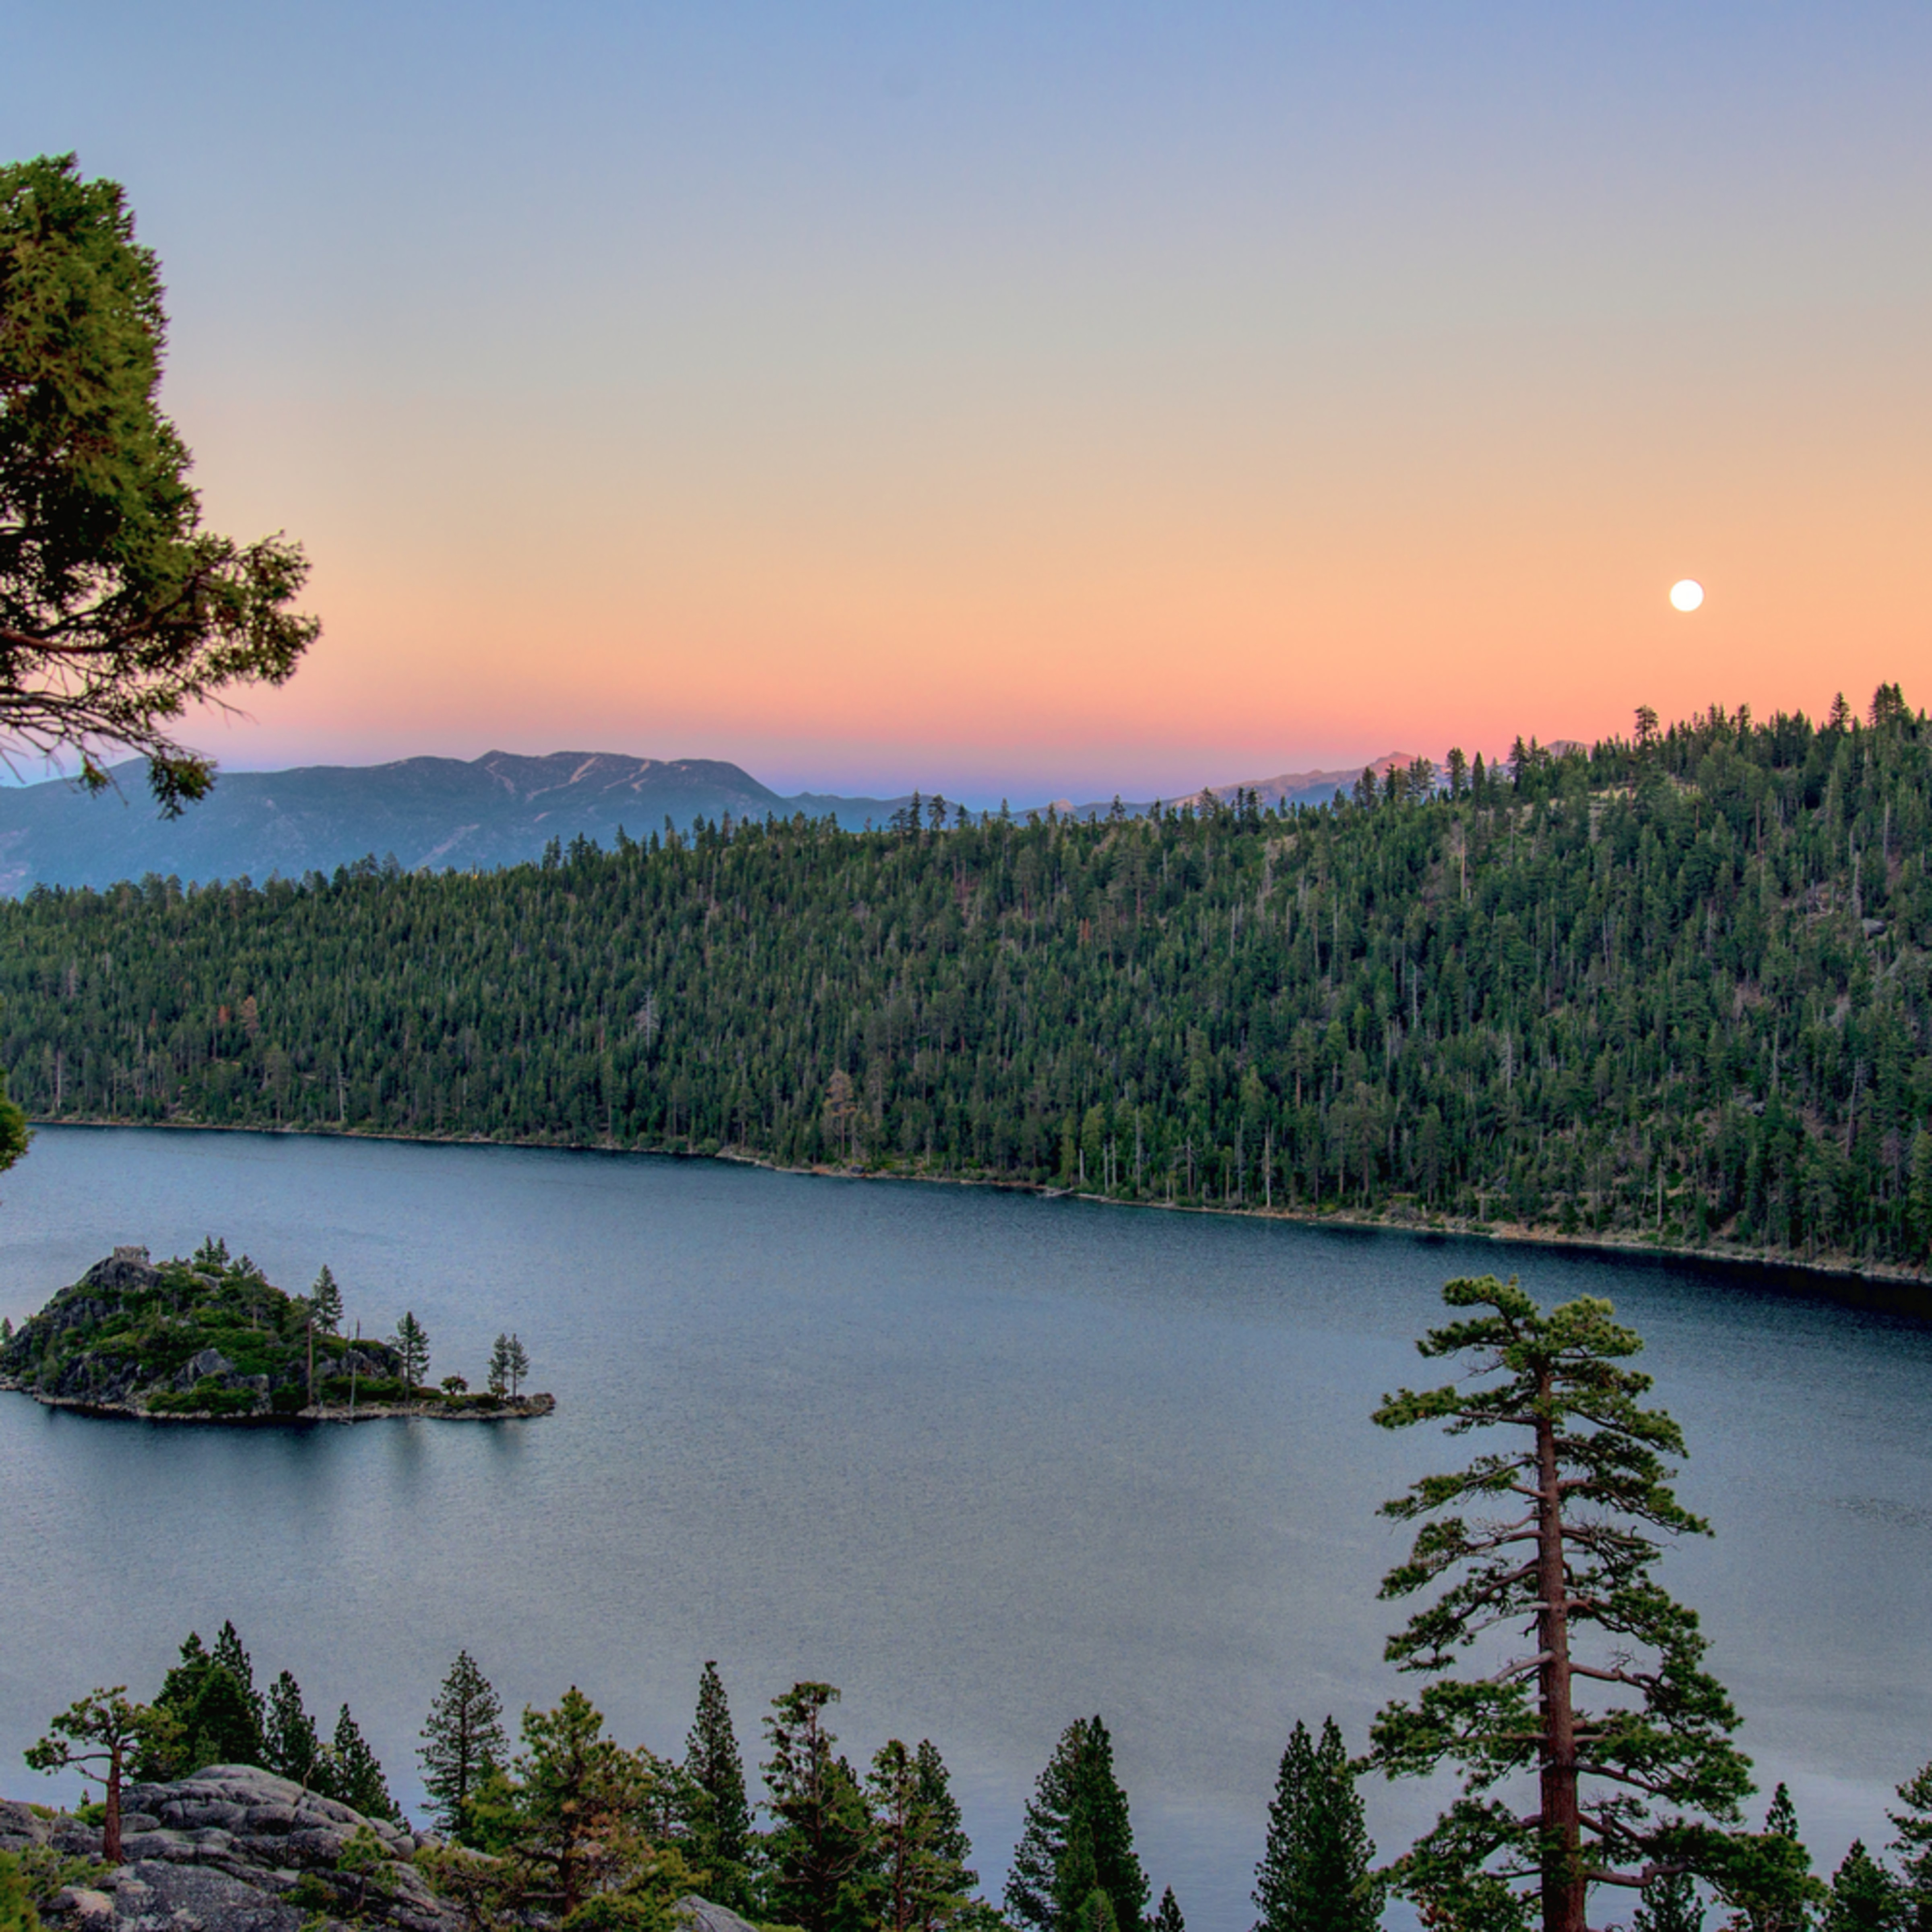 Emerald bay super moon sunset copy 1 uiud3l